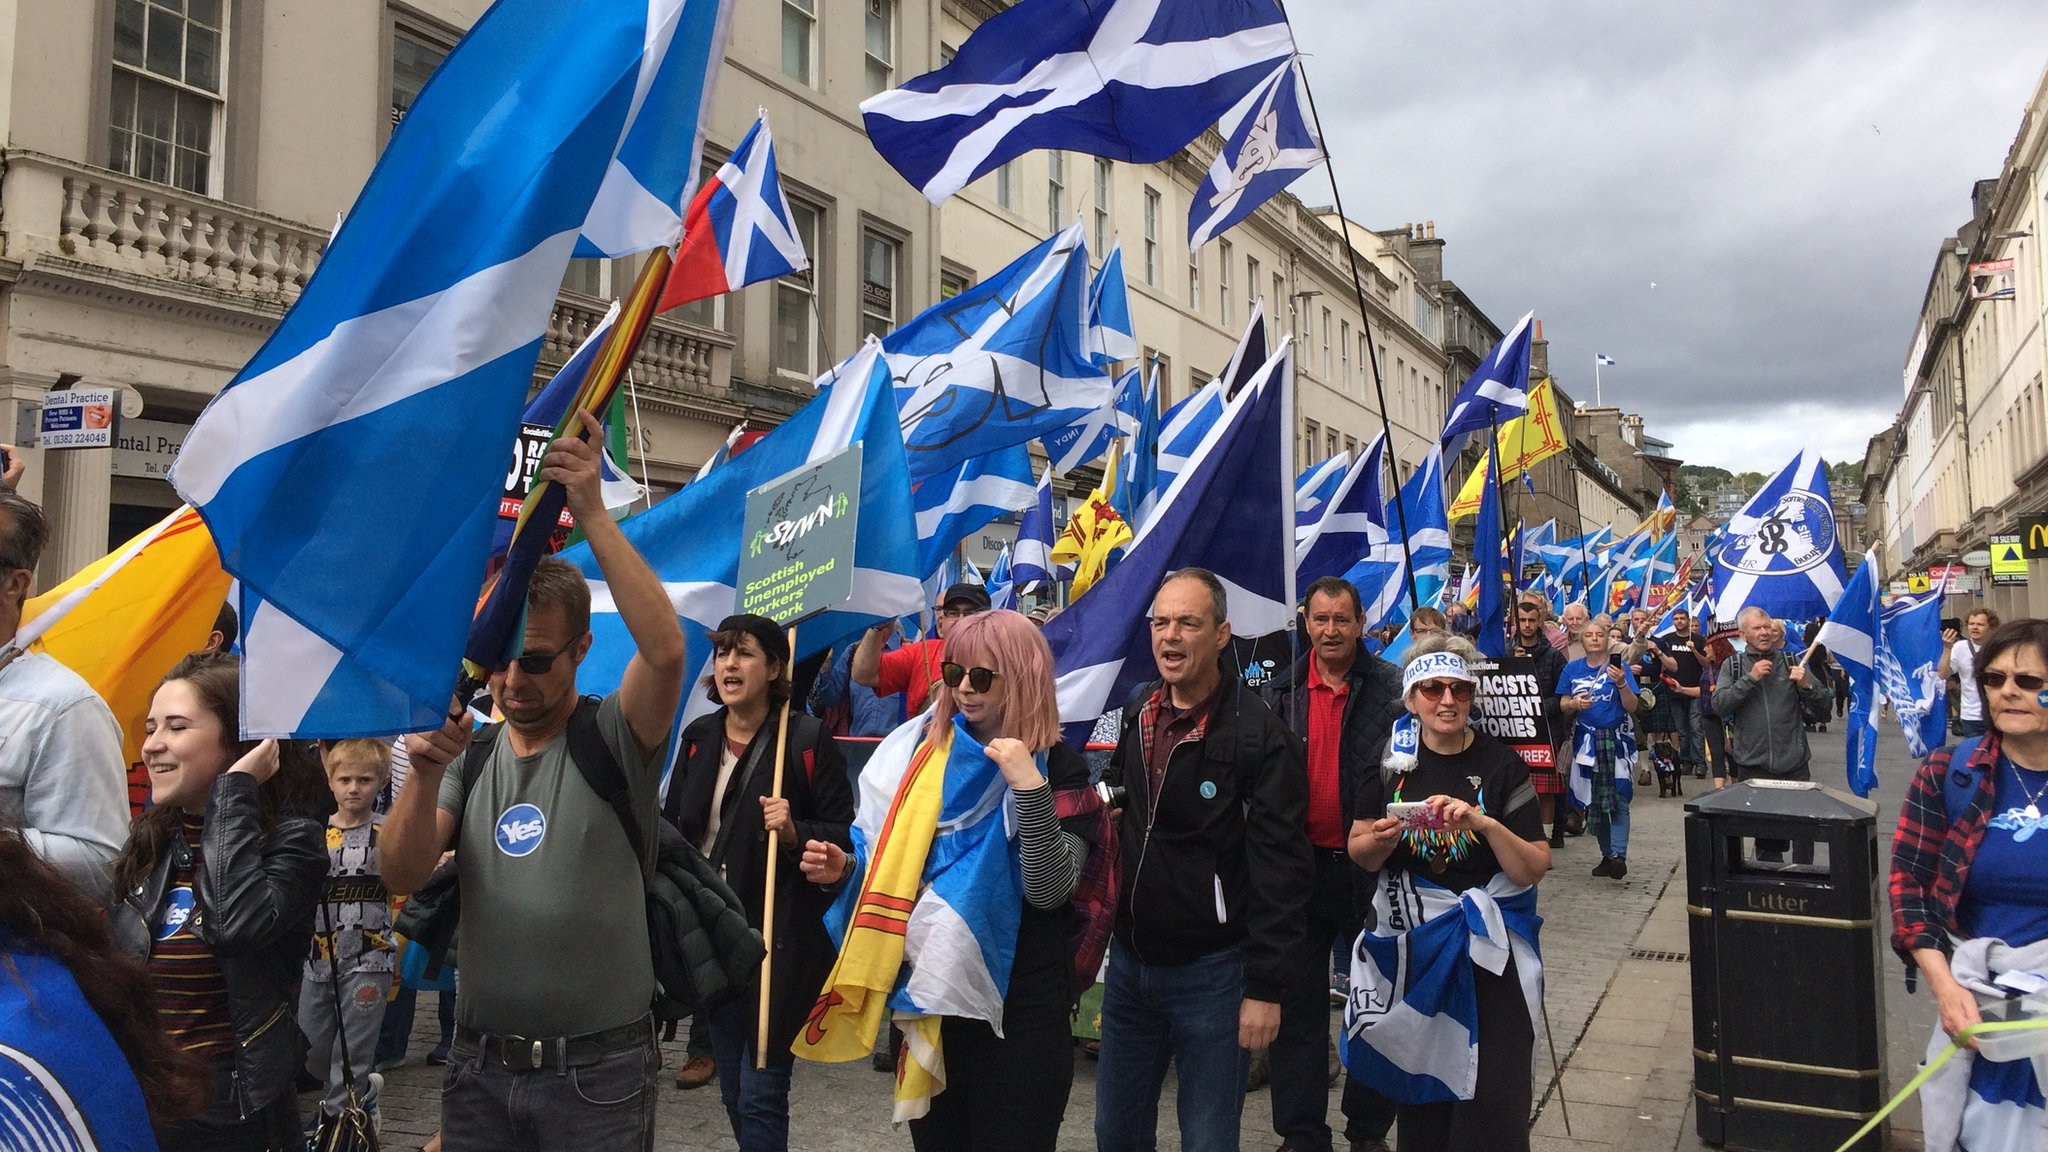 Independence march held in Dundee